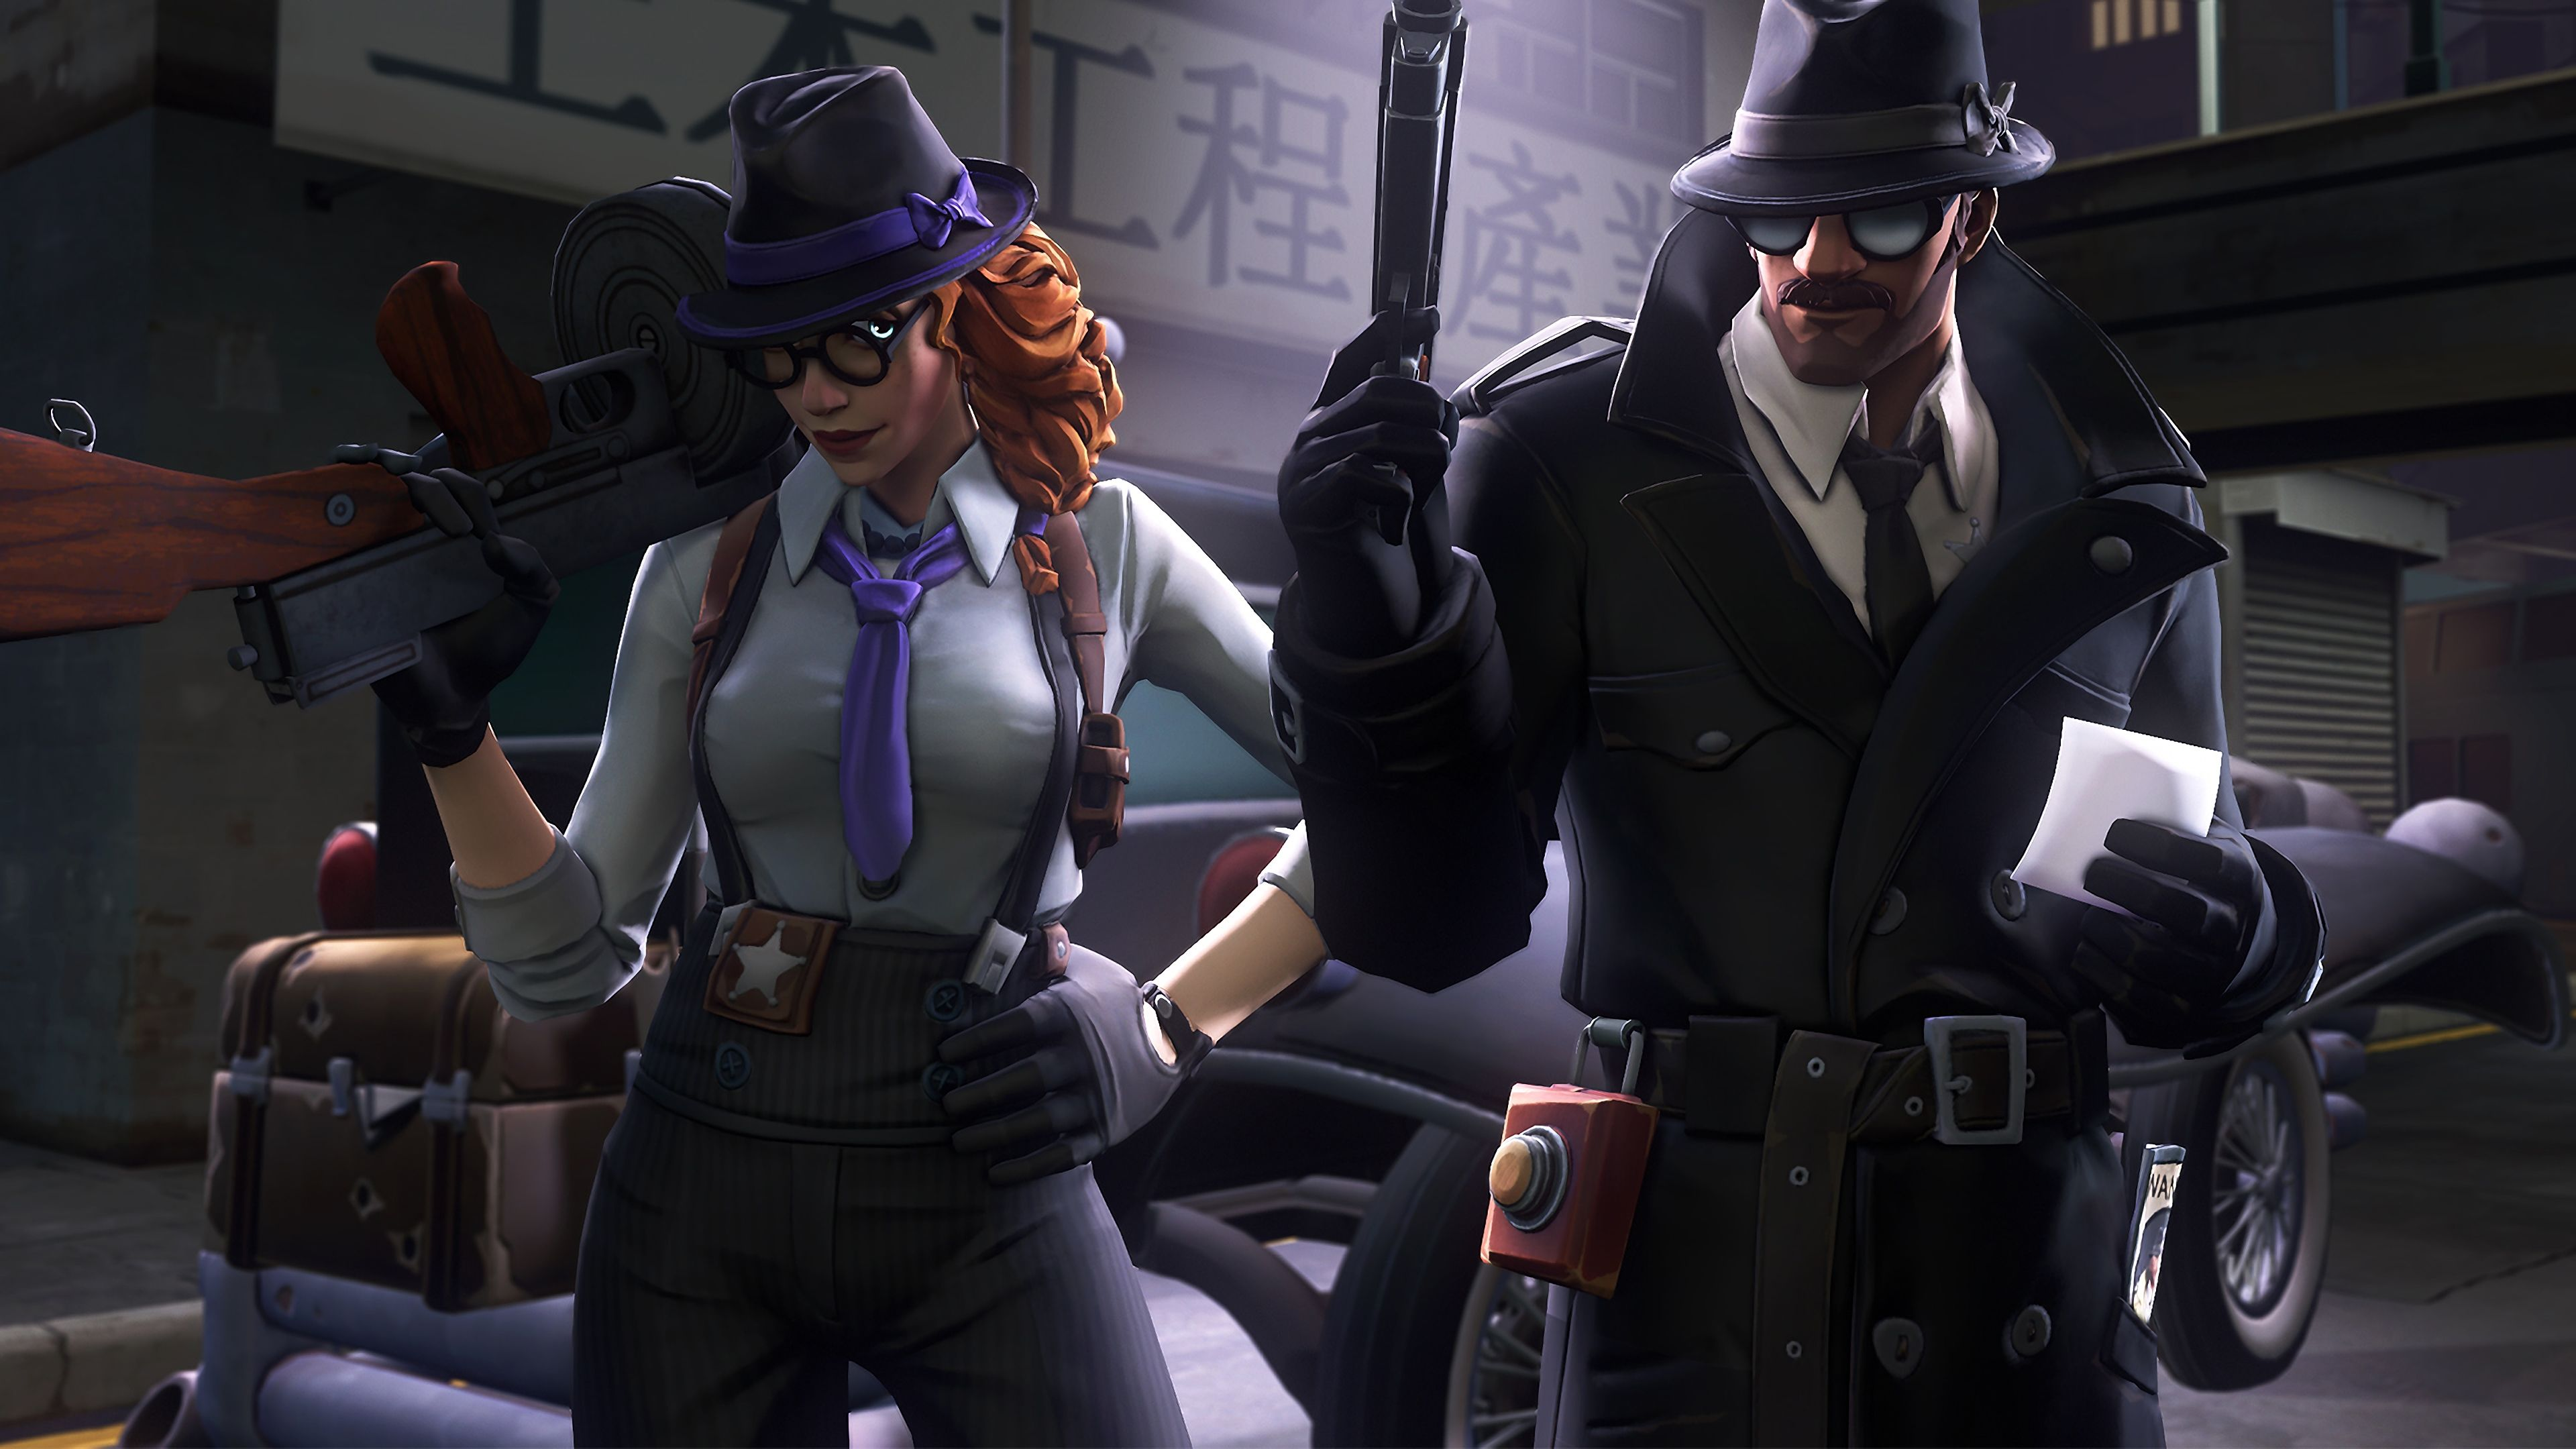 Gumshoe And Noir Fortnite Battle Royale Hd Wallpaper Fortnite Best Gaming Wallpapers